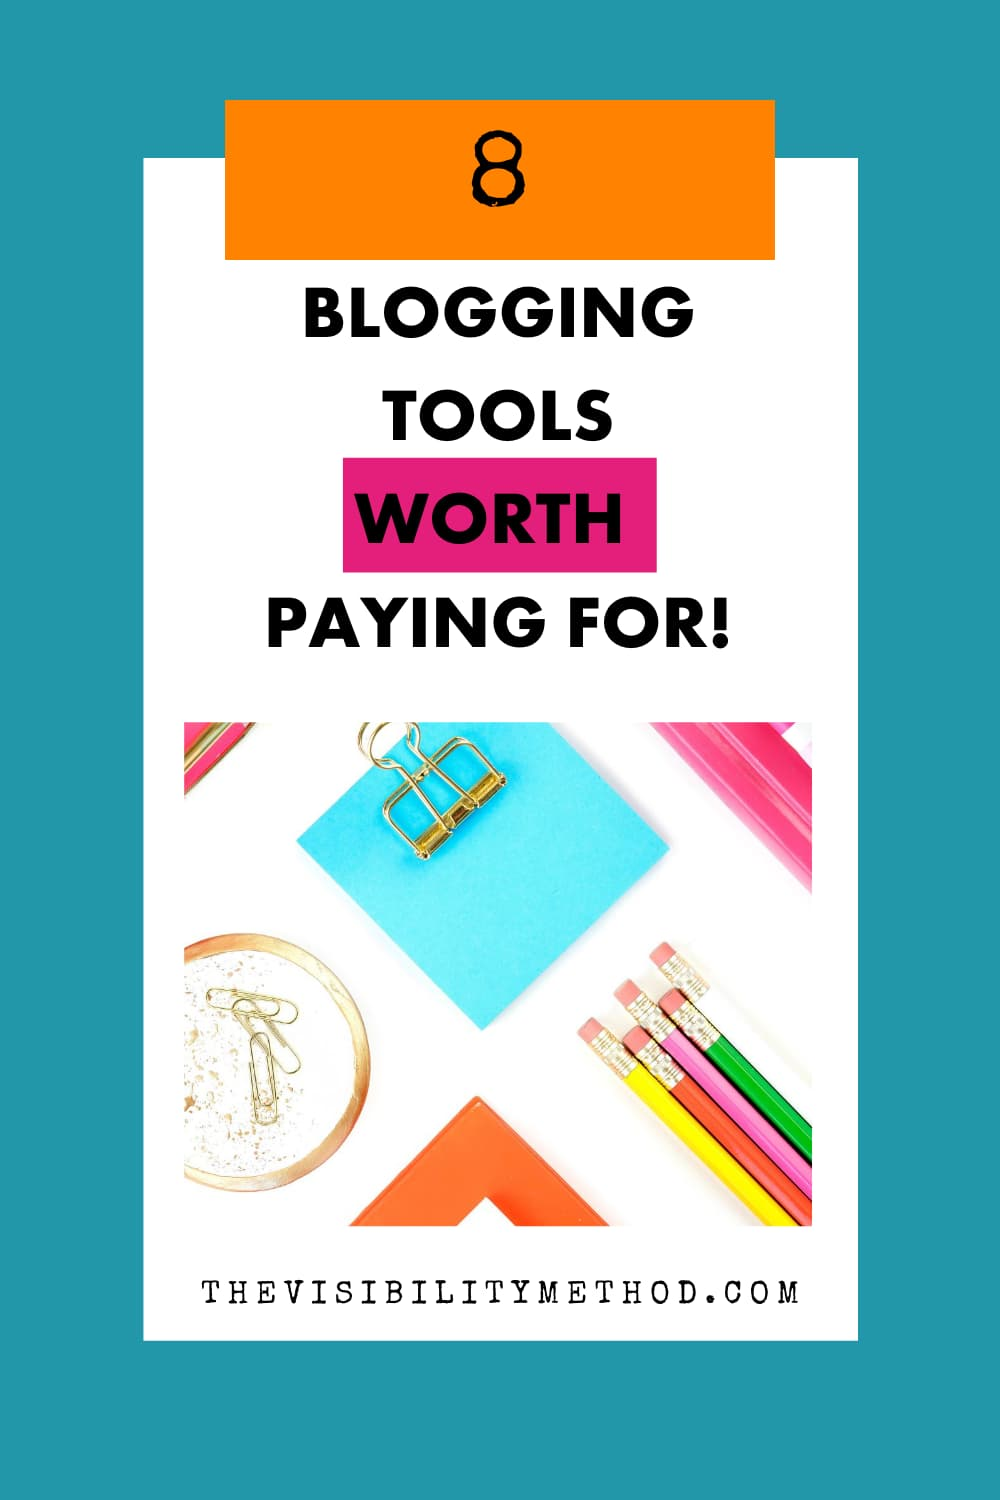 8 Blogging Tools Worth Paying For